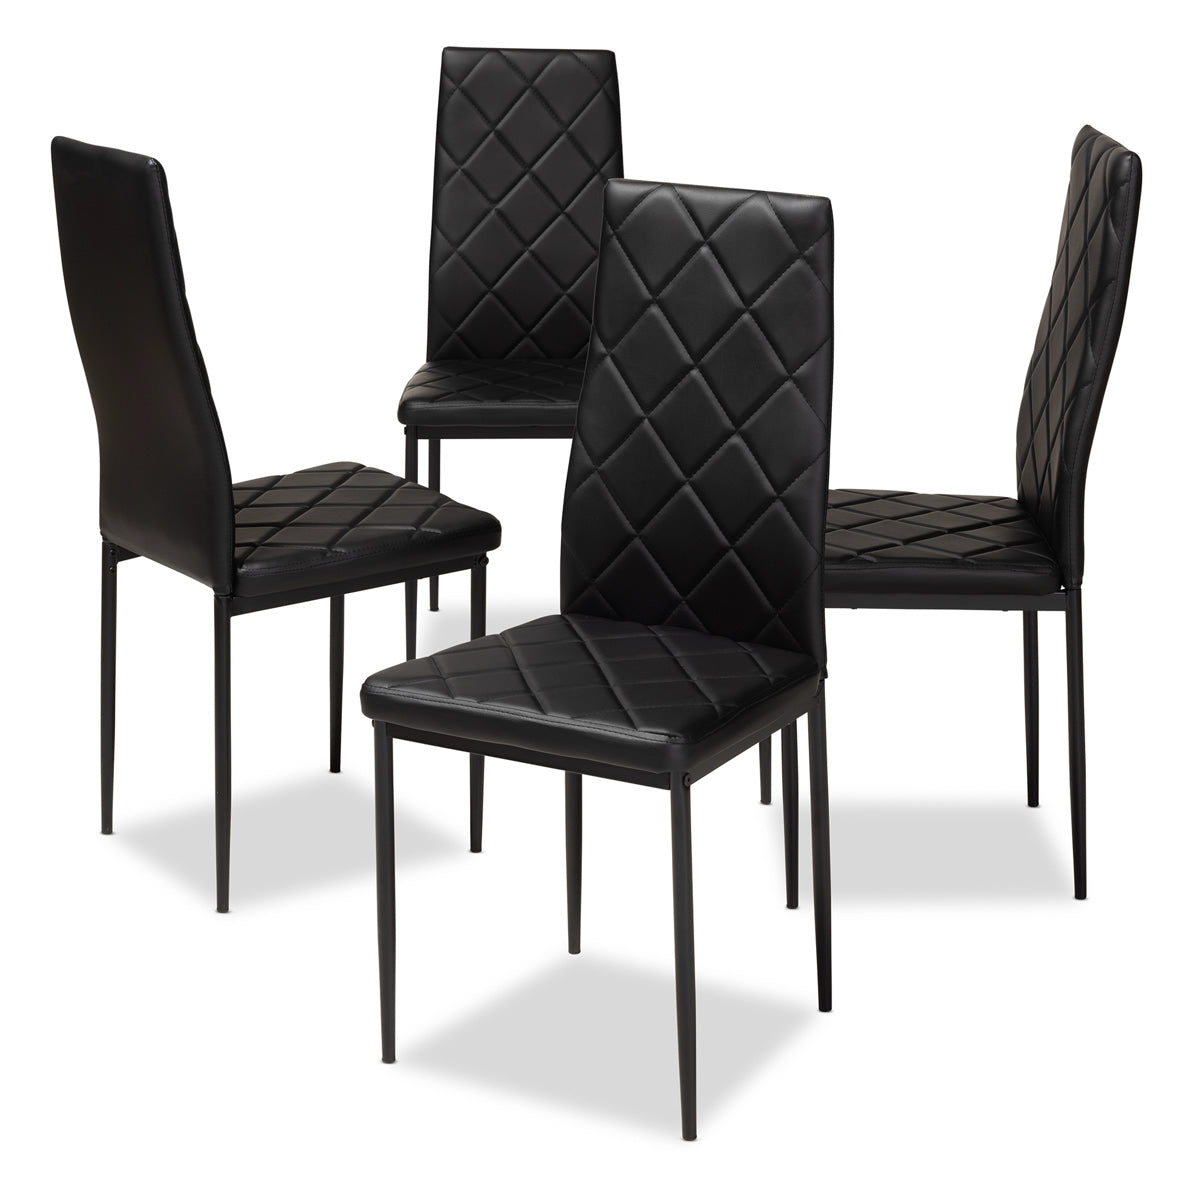 Baxton Studio Blaise Modern and Contemporary Black Faux Leather Upholstered Dining Chair (Set of 4) Baxton Studio-dining chair-Minimal And Modern - 1